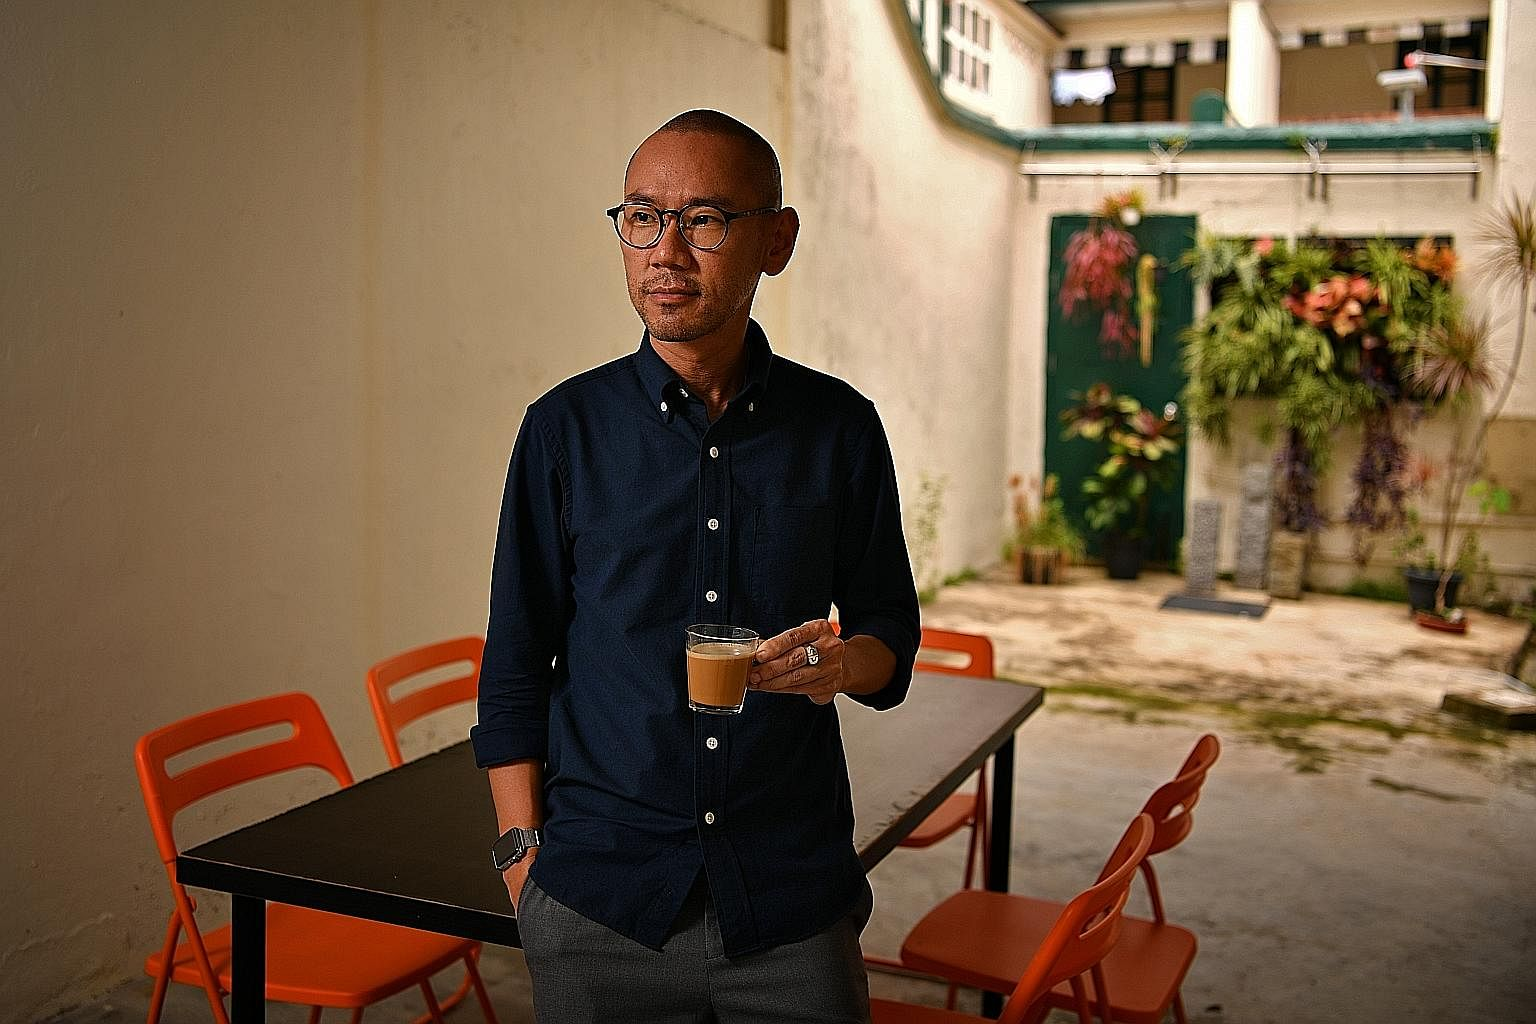 Mr Alaric Tan in his early 20s. Not long after graduating, a friend convinced him to take half an Ecstasy tablet on a Bangkok holiday. For nearly two decades, Mr Alaric Tan took drugs as a form of escape from a life scarred by abuse, depression and g